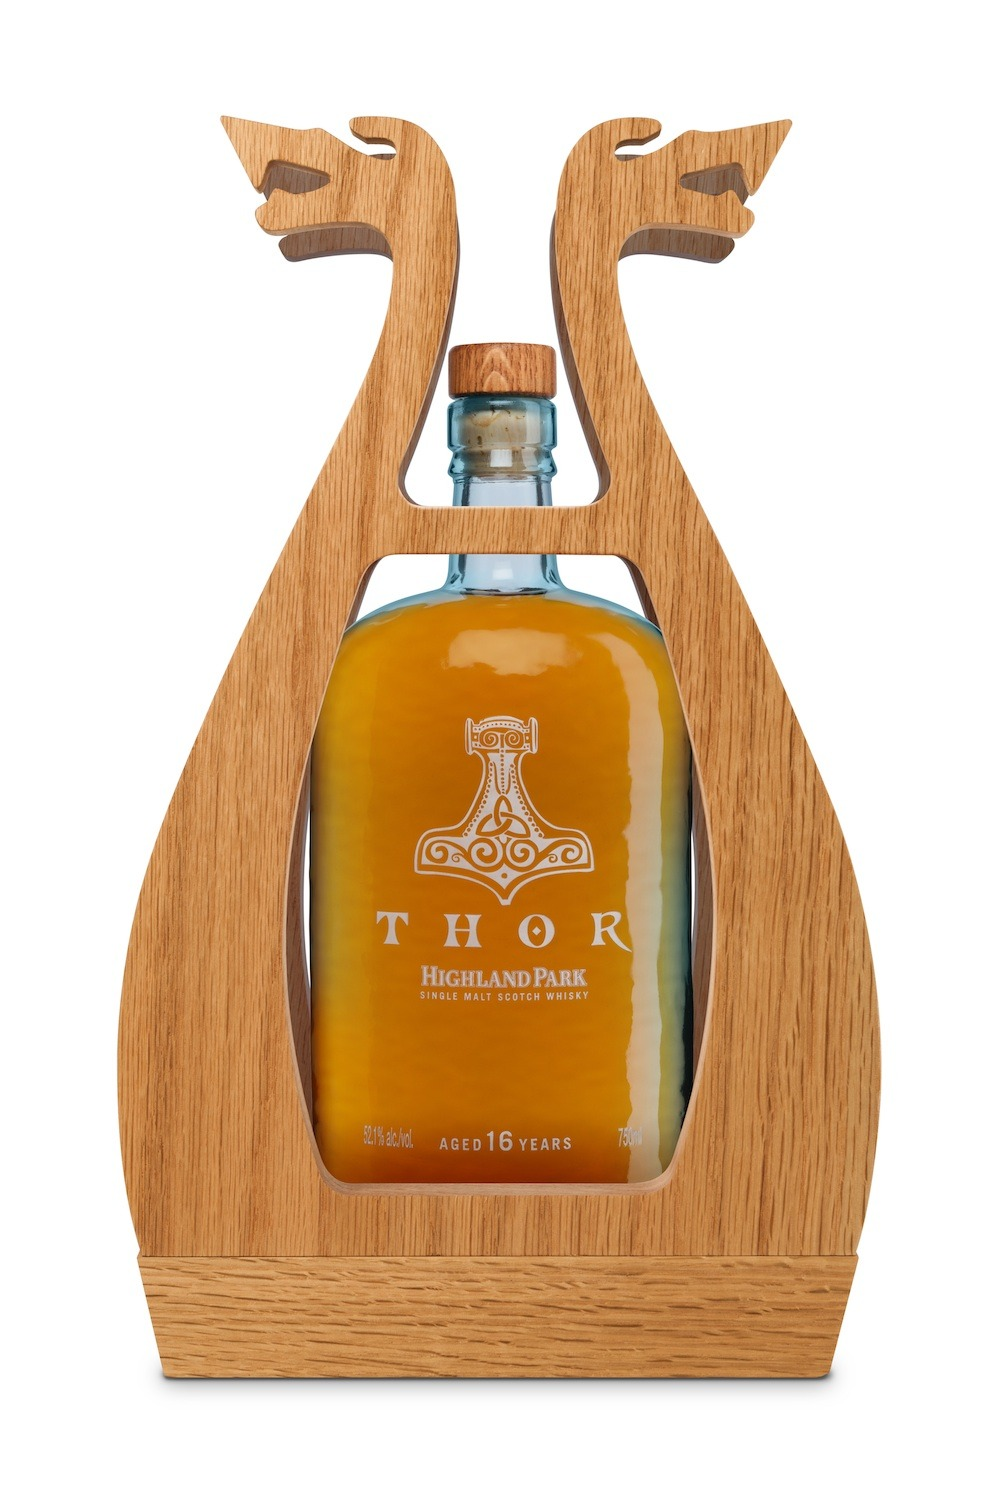 christielouwho:  THOR single-malt whiskey by Highland Park Valhalla Collection. 16-year single-malt whiskey for $199.   Highland Park Thor 16 Year Old Single Malt Scotch Whisky (52.1% 104.2 proof, $199) is golden amber in color with a slightly sweet and fruity nose. Peach, vanilla, and berry intermingle with a soft malt note. There's the slightest hint of peat underneath but the overall character is light, sweet, and soft. Thor's entry is a burst (or Thor Hammer if you'd like to stick with the theme) of flavor. The sweet vanilla and peach from the nose are there but they are strongly backed by ginger, cinnamon, and oak spice. Rather than build, Thor evens out in the midpalate, giving you a chance to dig through all the layers of flavor. It's a little bit of an inversion to many of its peers that start off softer and build. In addition to ginger, peach, cinnamon, and oak, the berry note from the nose makes a return along with sweet malt, honey, and the slightest hint of smoky peat. The finish on Thor is long and slightly dry with a nice combination of honeyed vanilla, ginger, and oak spice. The finish is a little drier than most but it's a result of the high proof.  I like this…